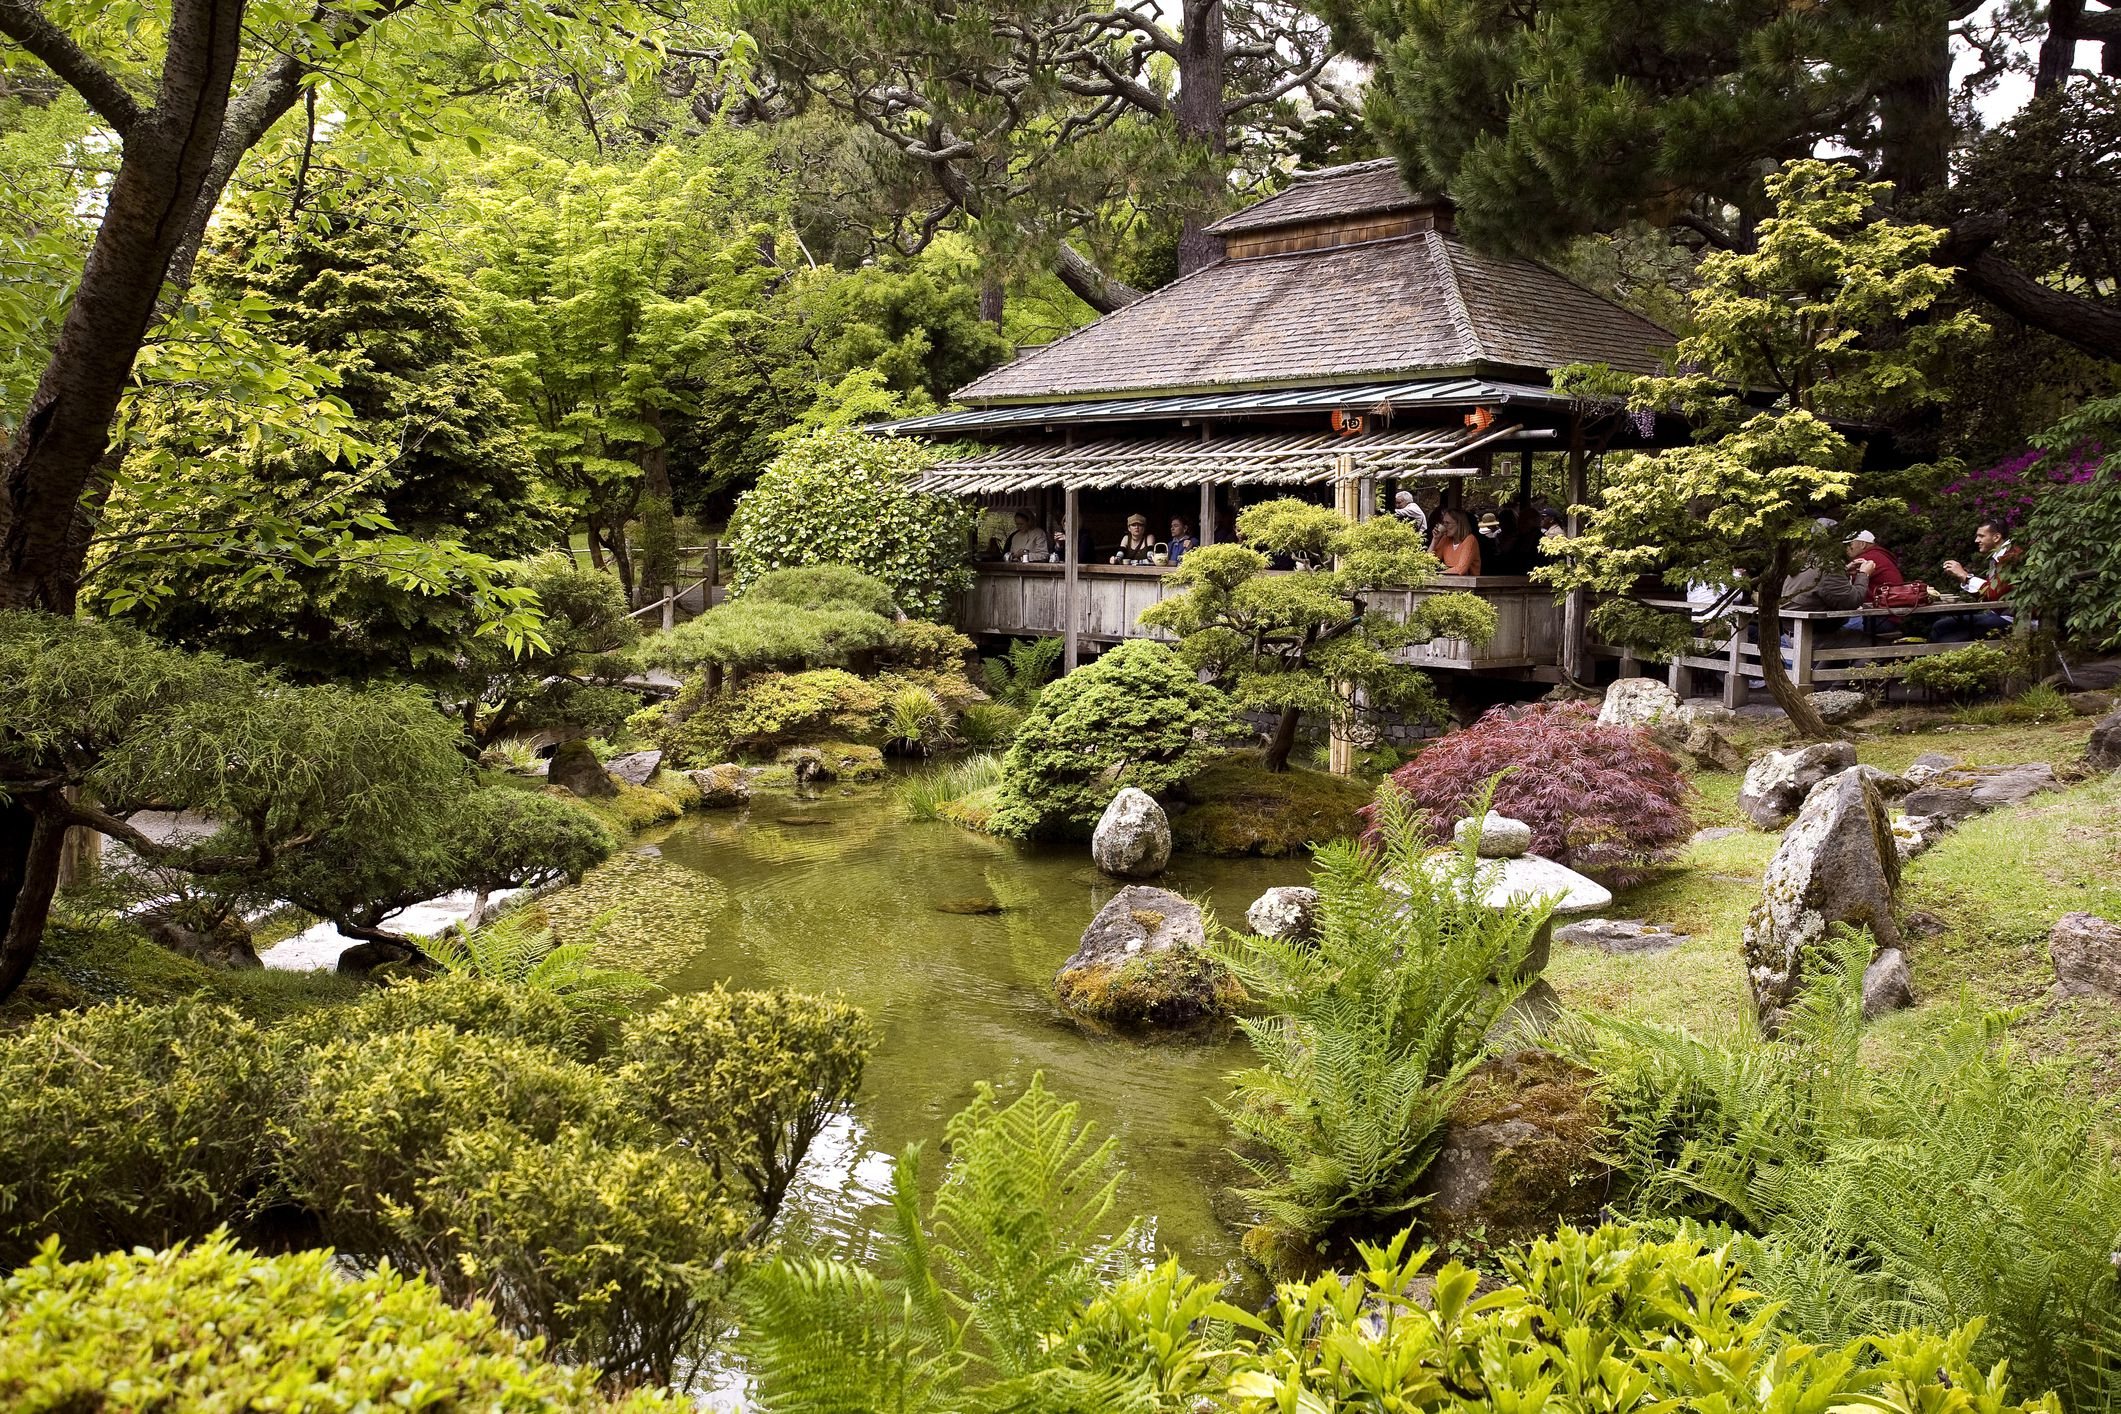 Buddhist Ceremony Traditional Japanese Garden: A Guide To The Japanese Tea Garden In Golden Gate Park